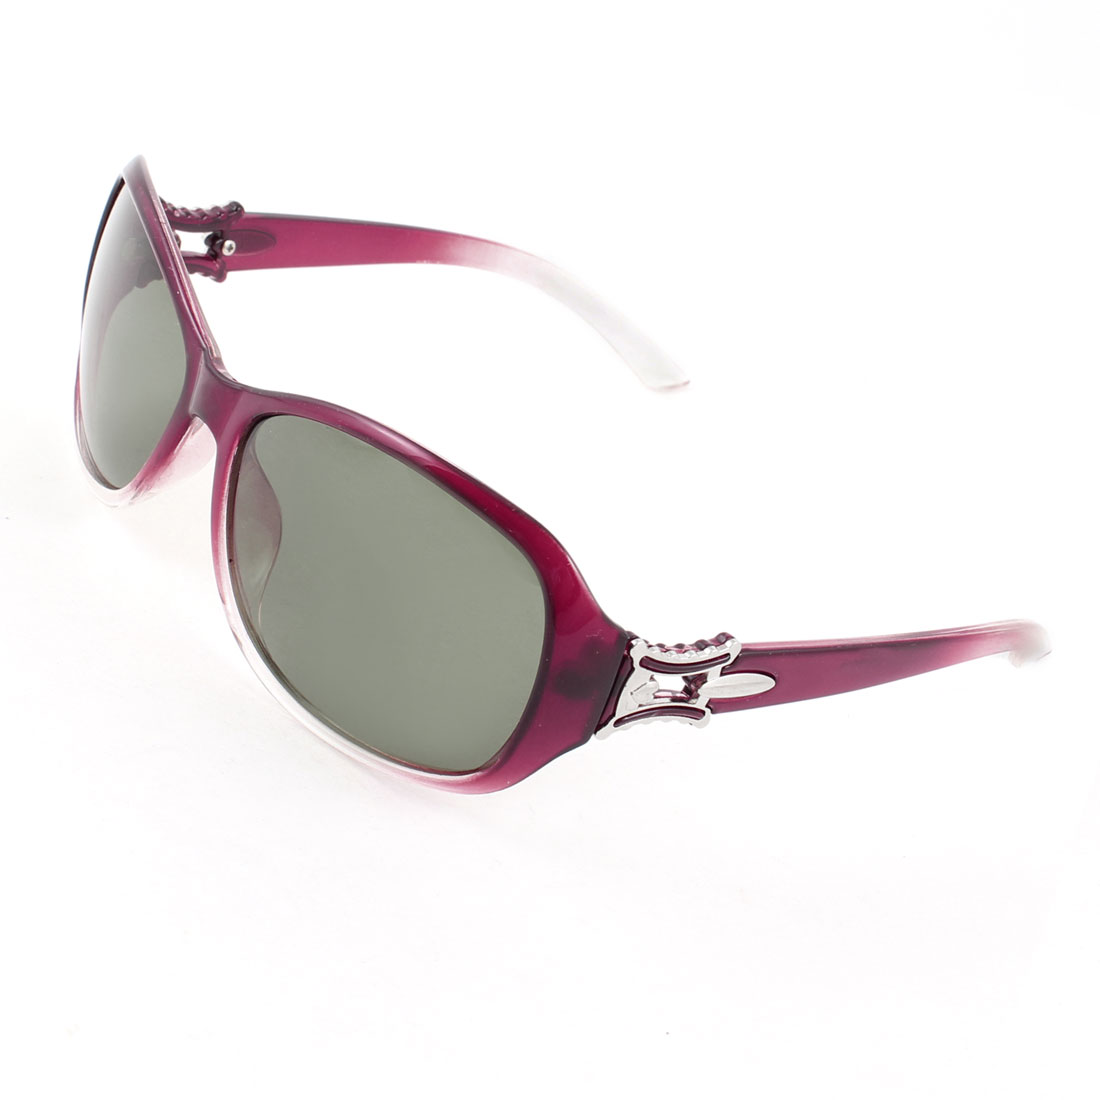 Ladies Teardrop Shape Colored Lens Eyeglasses Polarized Sunglasses Burgundy Clear